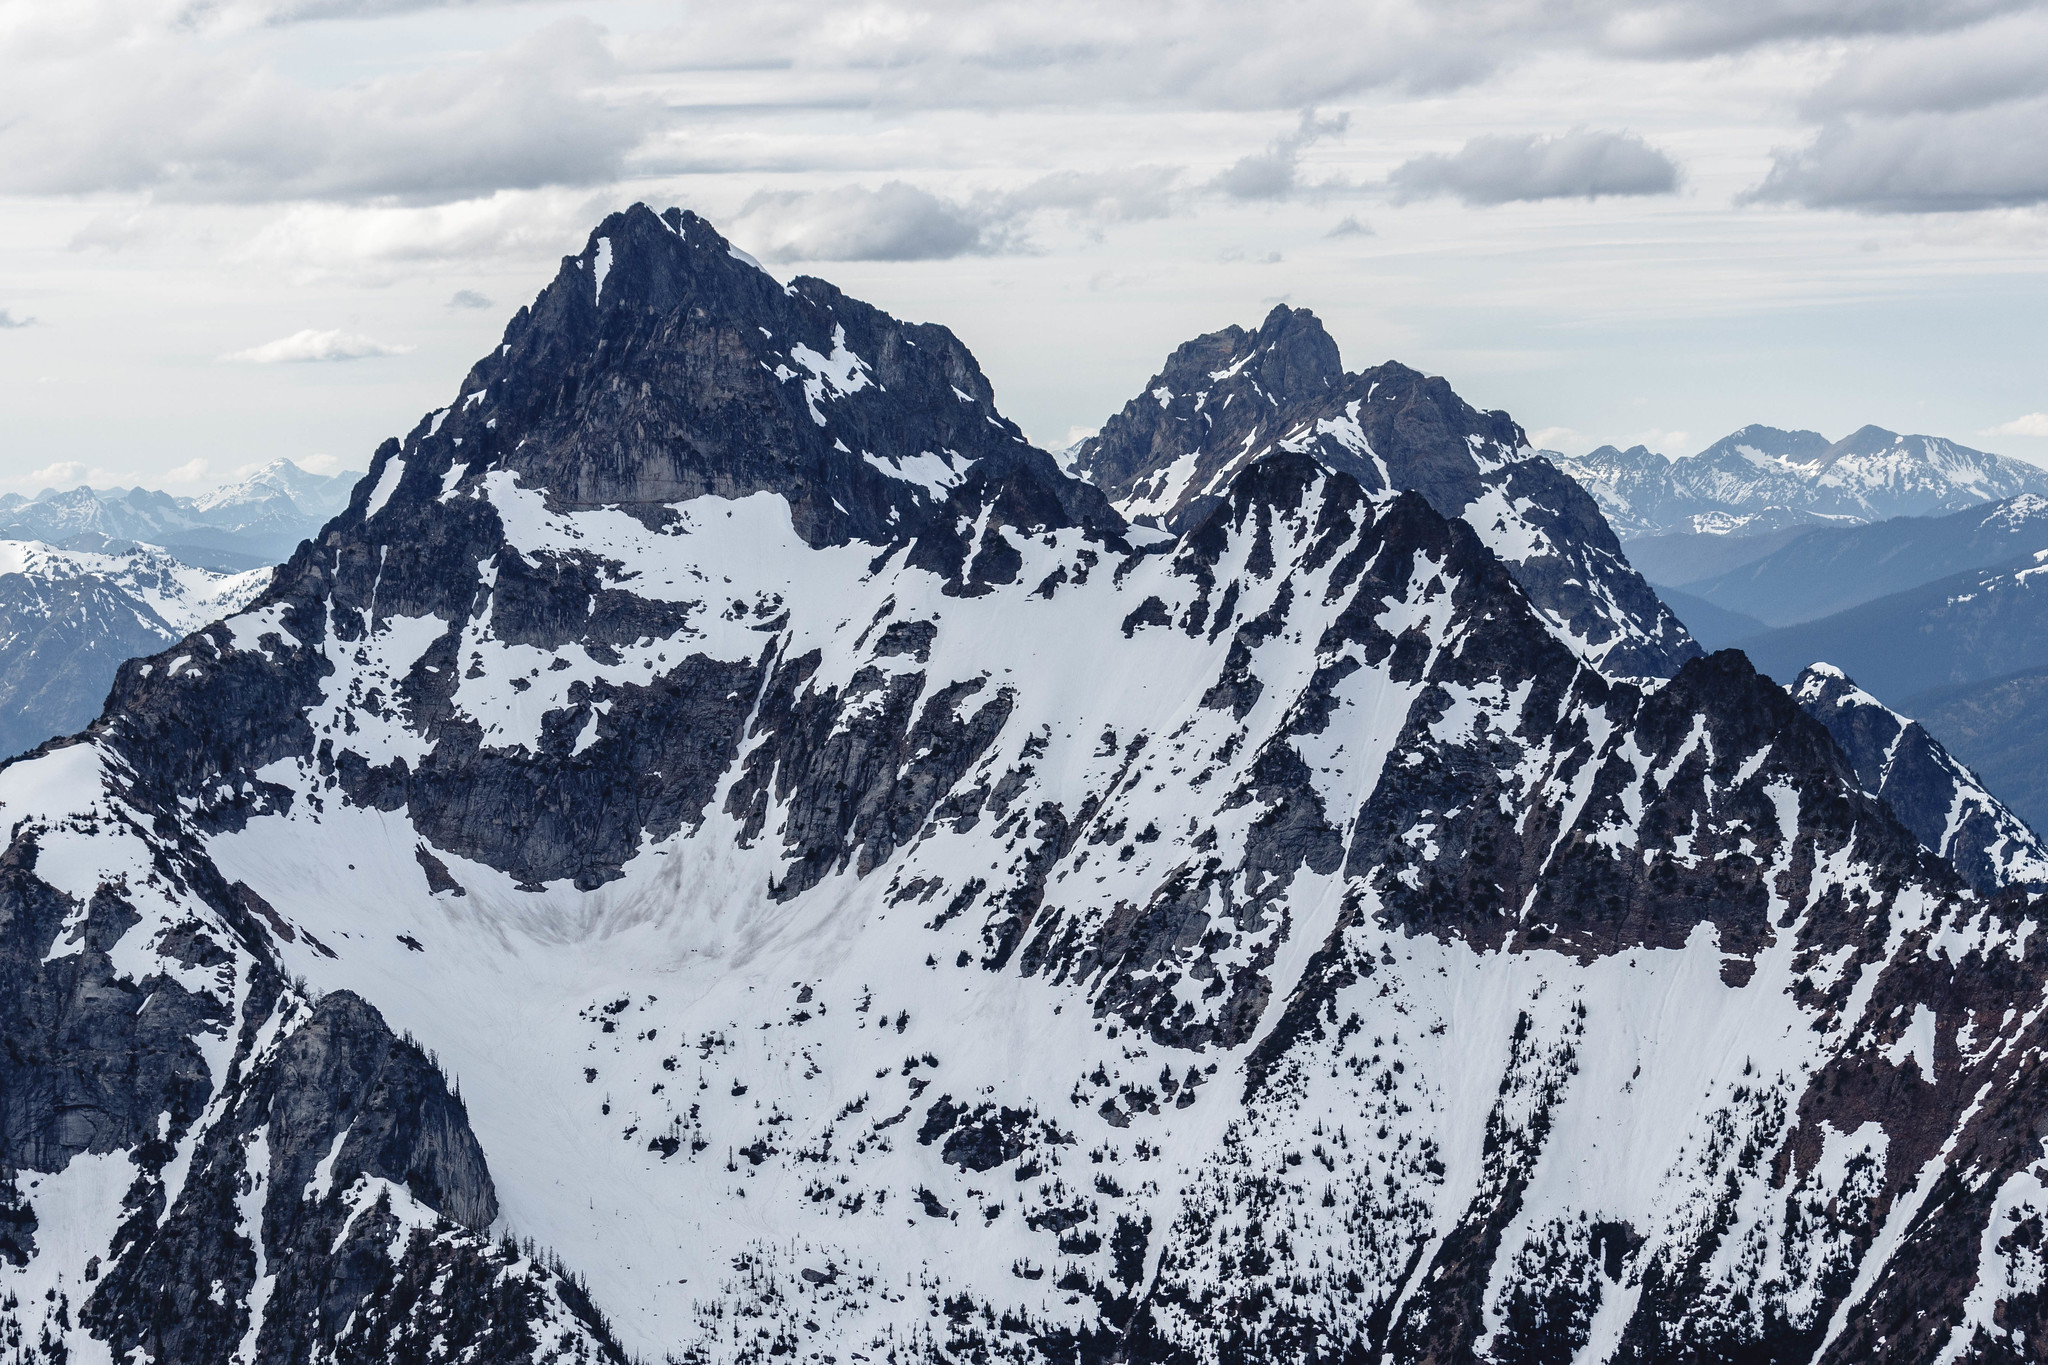 Azurite Peak and Mount Ballard